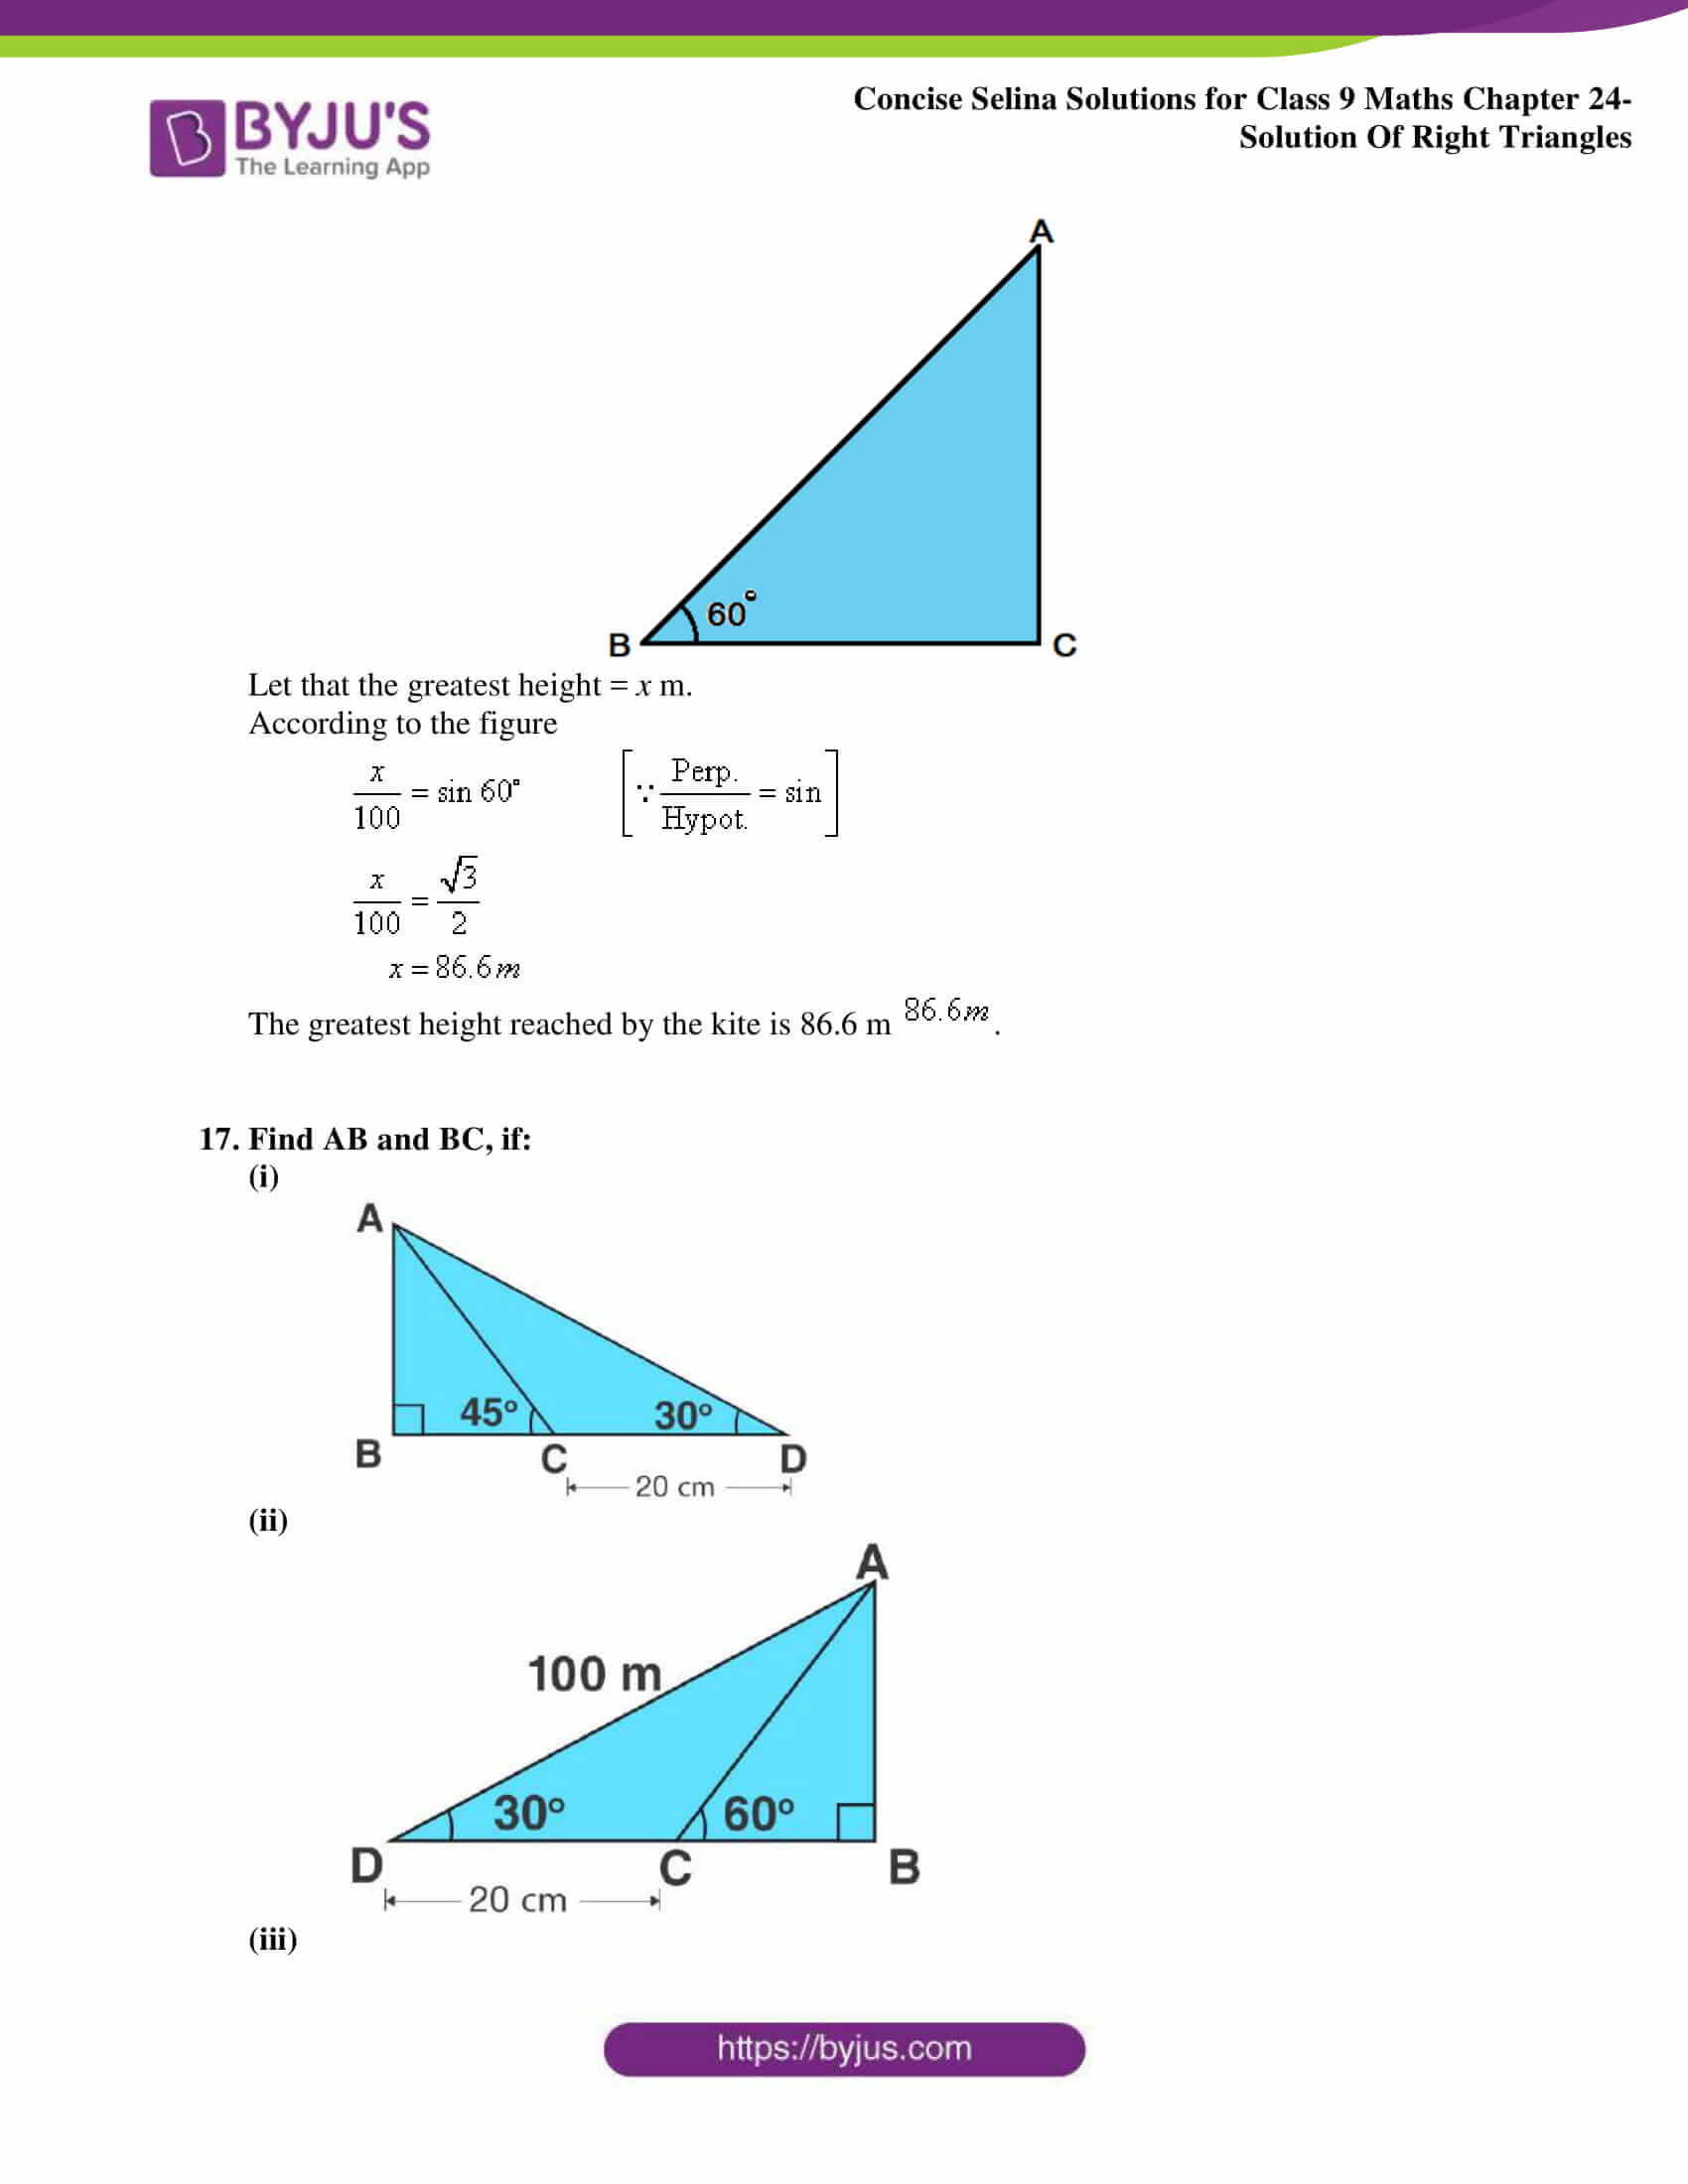 Concise Selina Solutions Class 9 Maths Chapter 24 Solution Of Right Triangles part 17